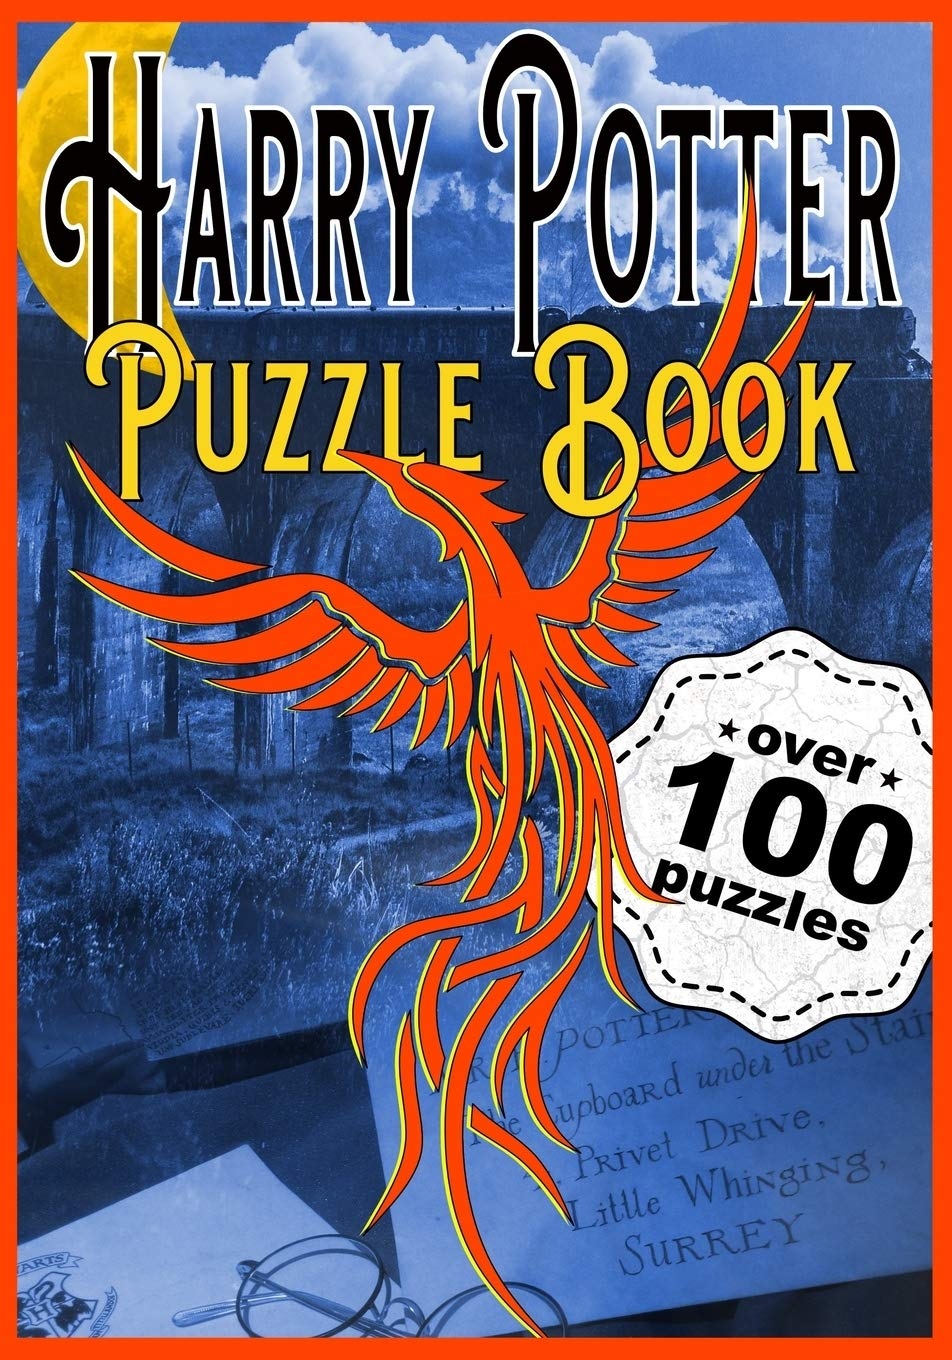 HARRY POTTER PUZZLE BOOK: The Perfect Hogwarts and Wizarding Trivia Quiz Book